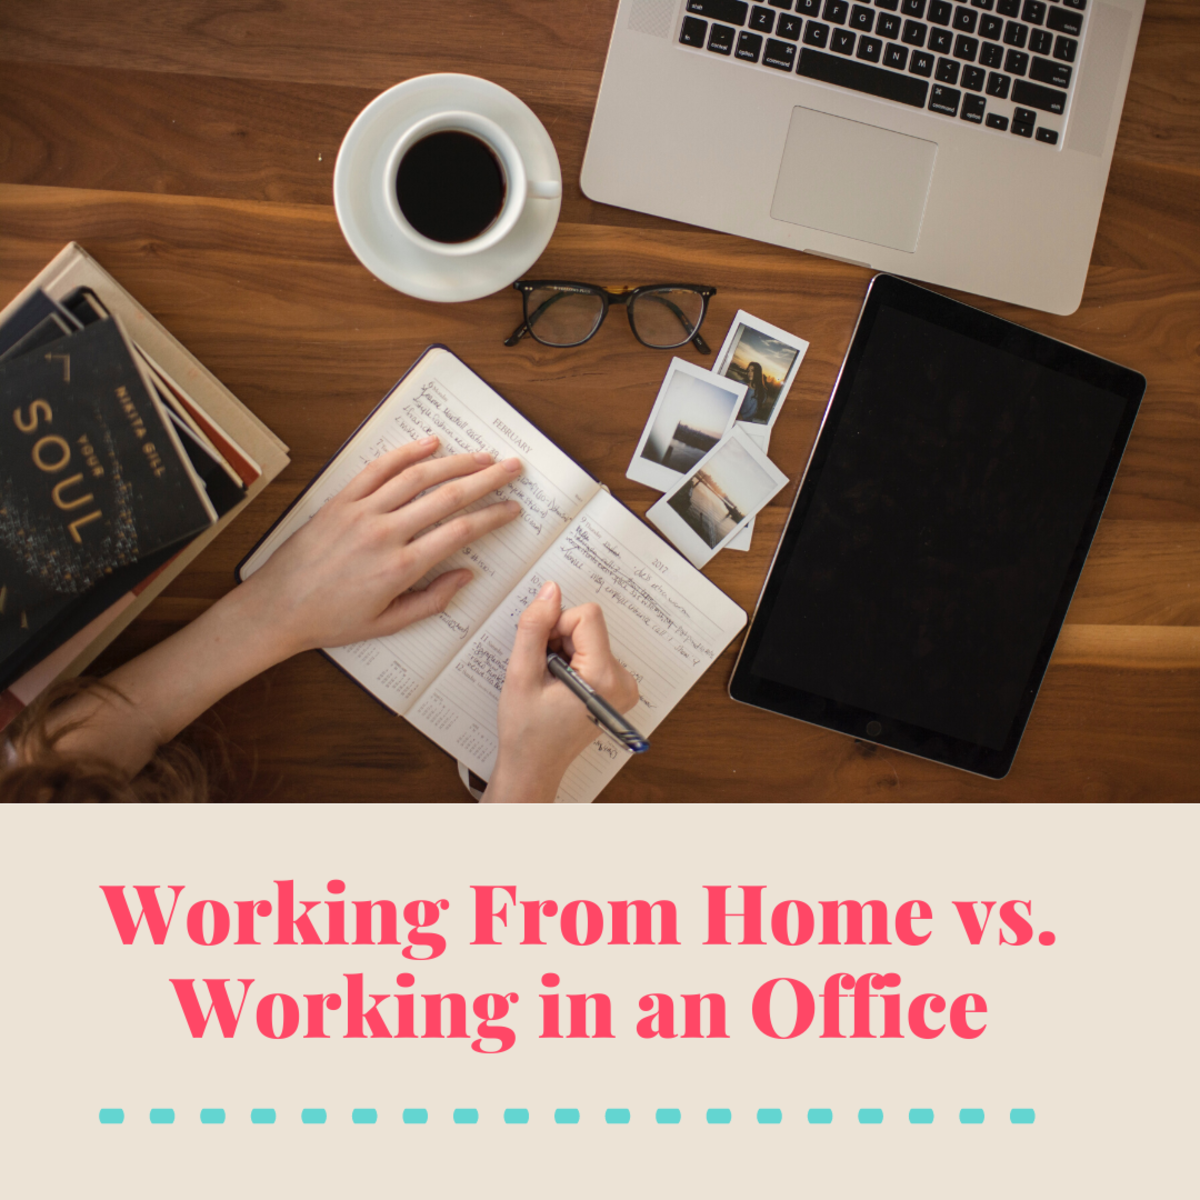 Read on to learn if working from home or working in an office is a better choice for you.